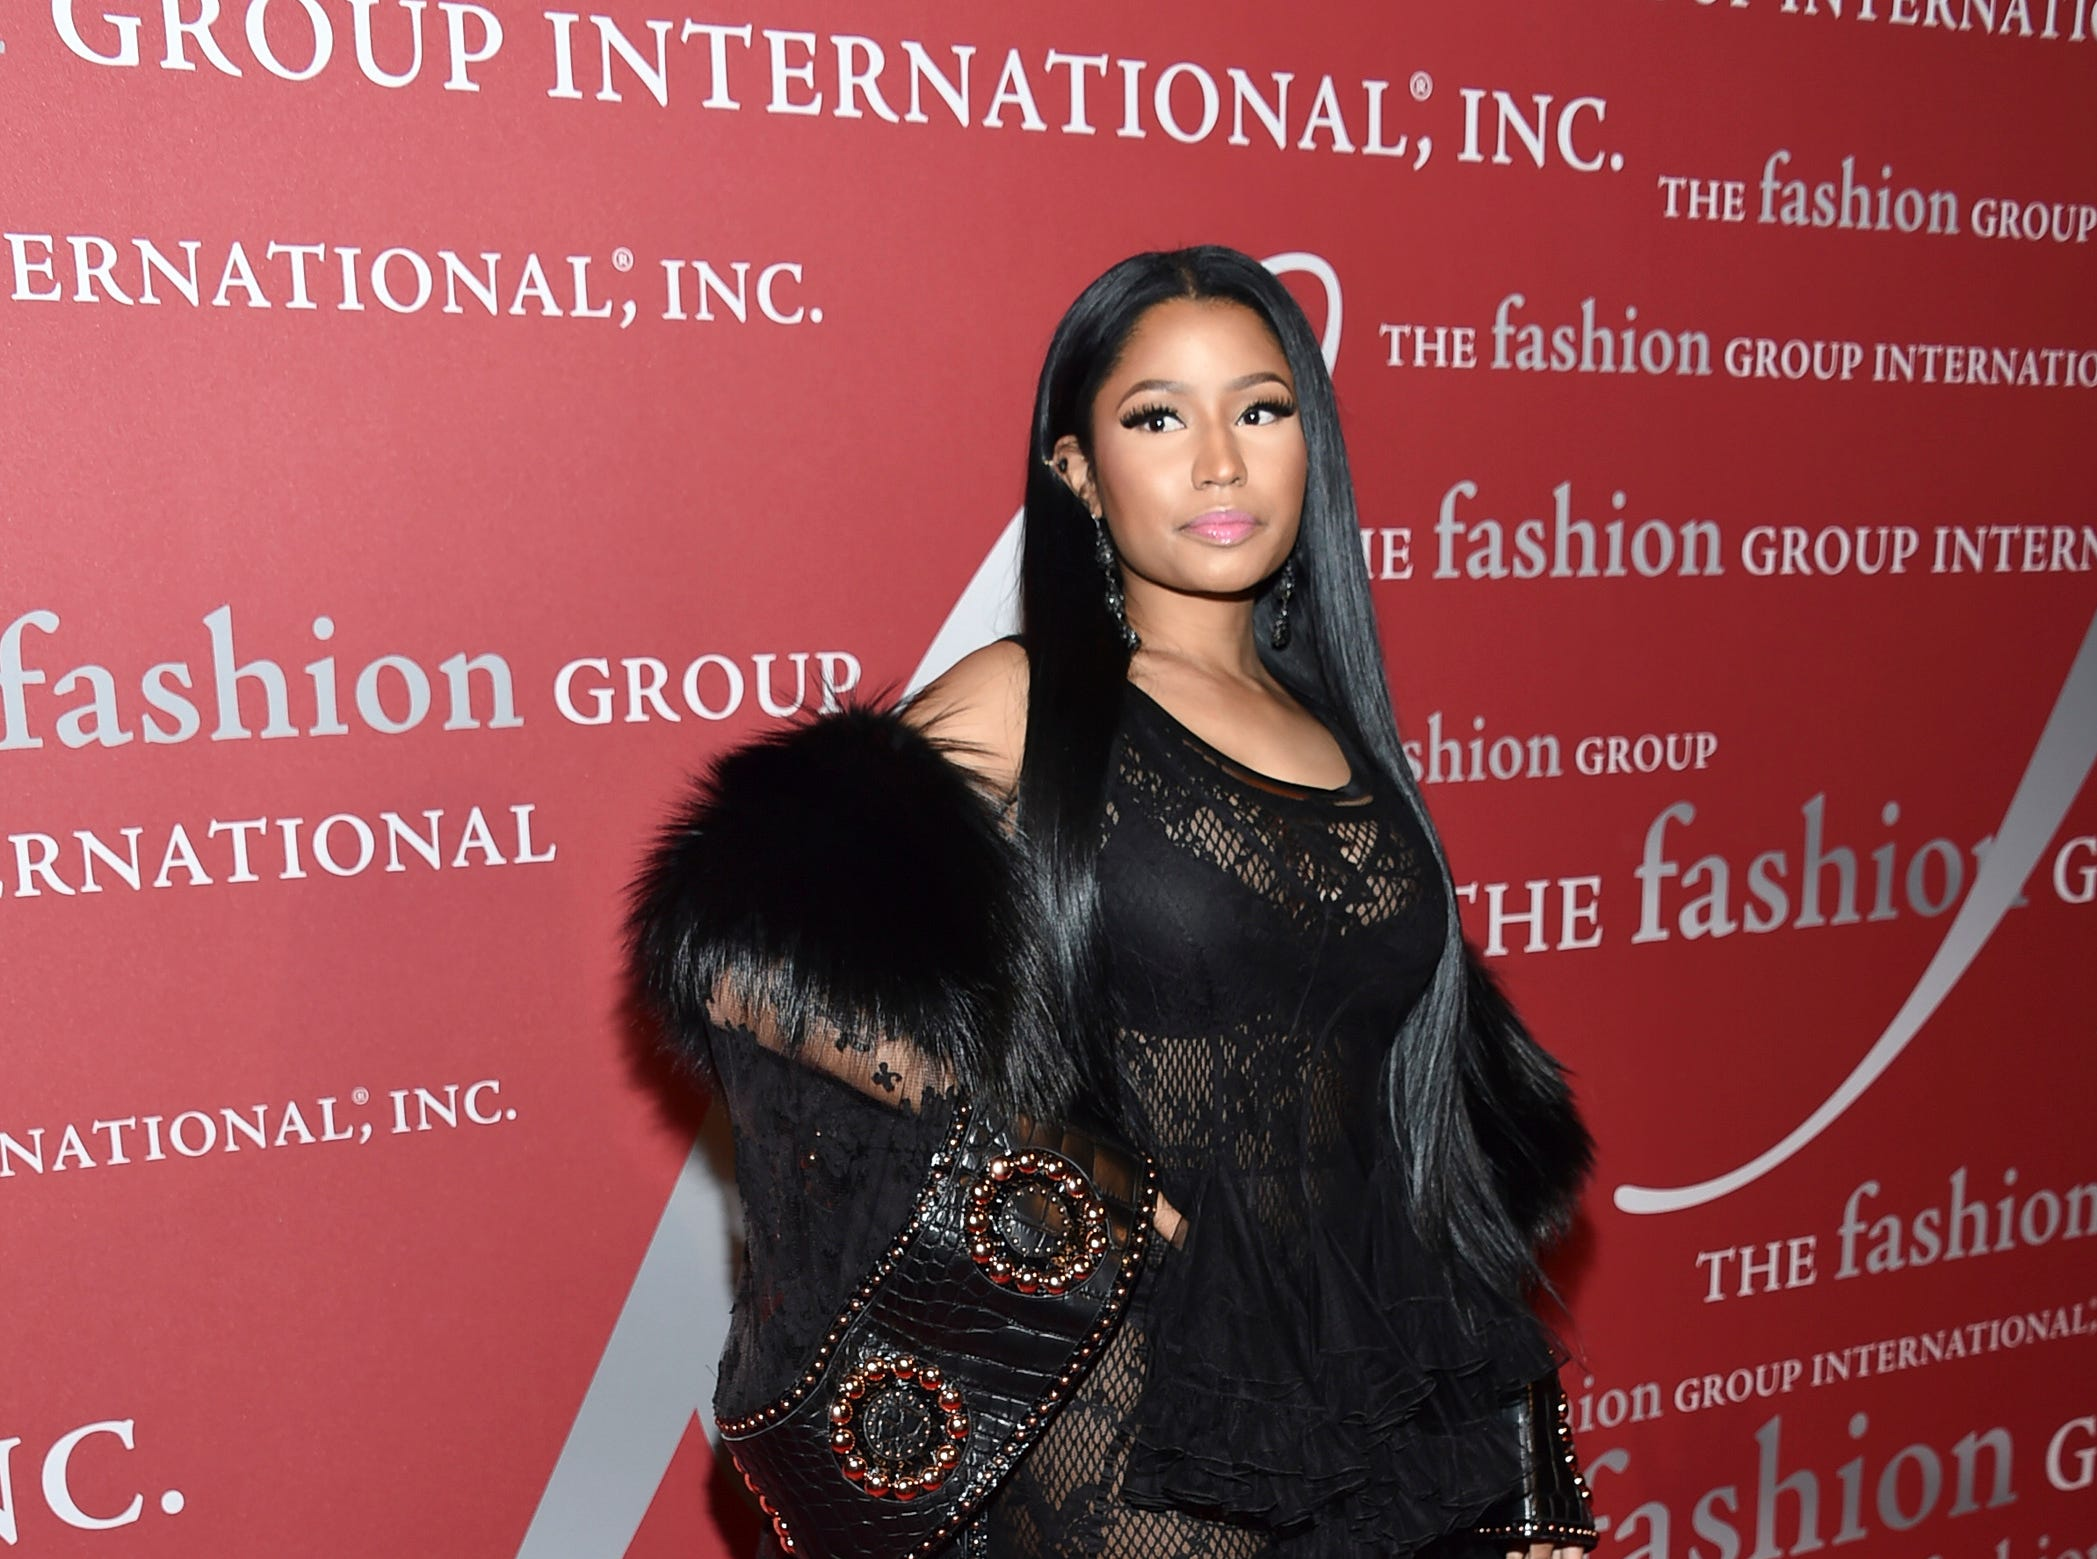 Singer Nicki Minaj attends The Fashion Group International's Night of Stars Gala at Cipriani Wall Street on Thursday, Oct. 27, 2016, in New York. (Photo by Evan Agostini/Invision/AP) ORG XMIT: NYEA229